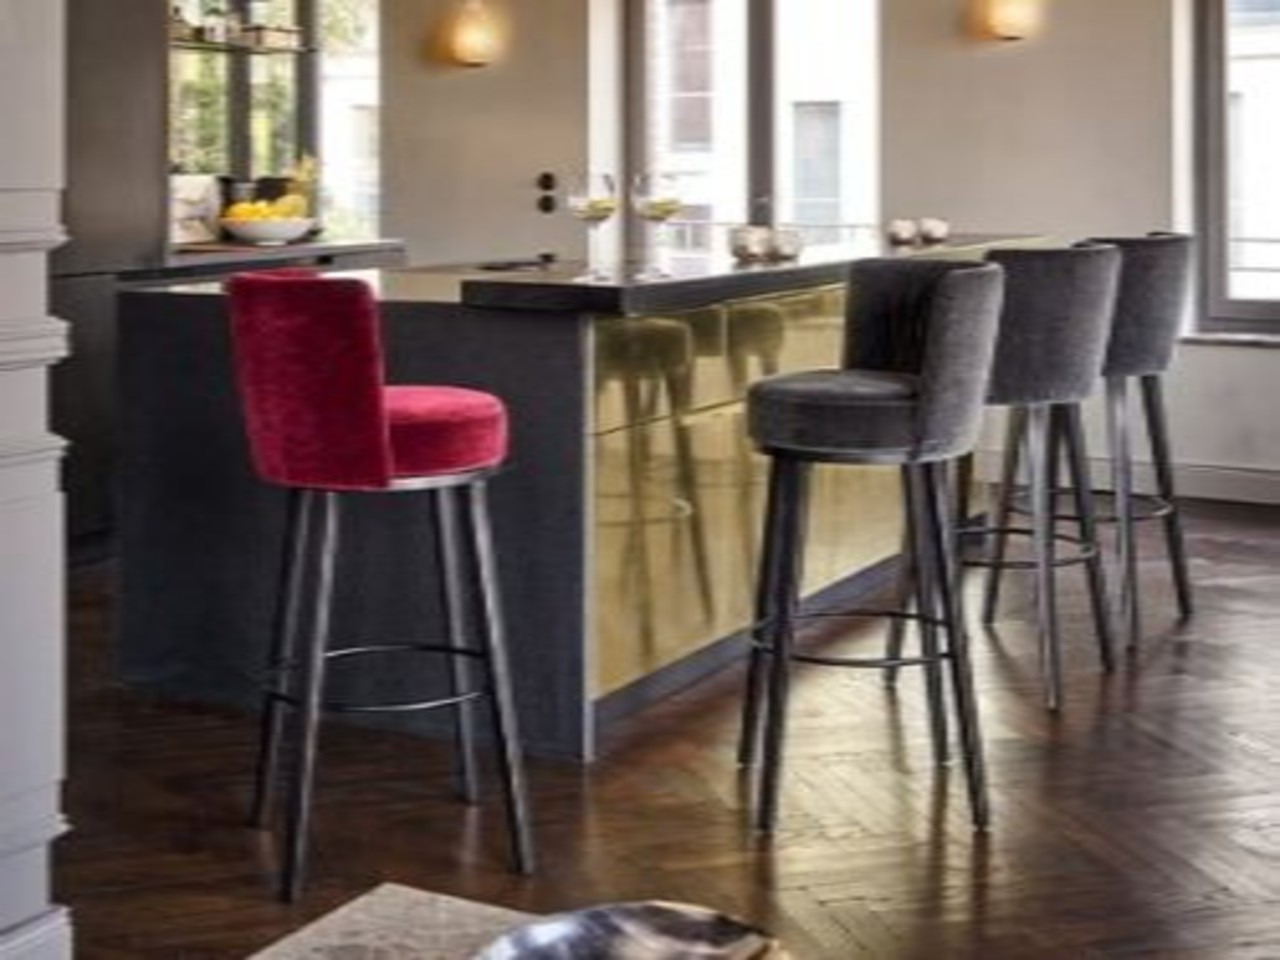 Polo Cocktail Bar Stool